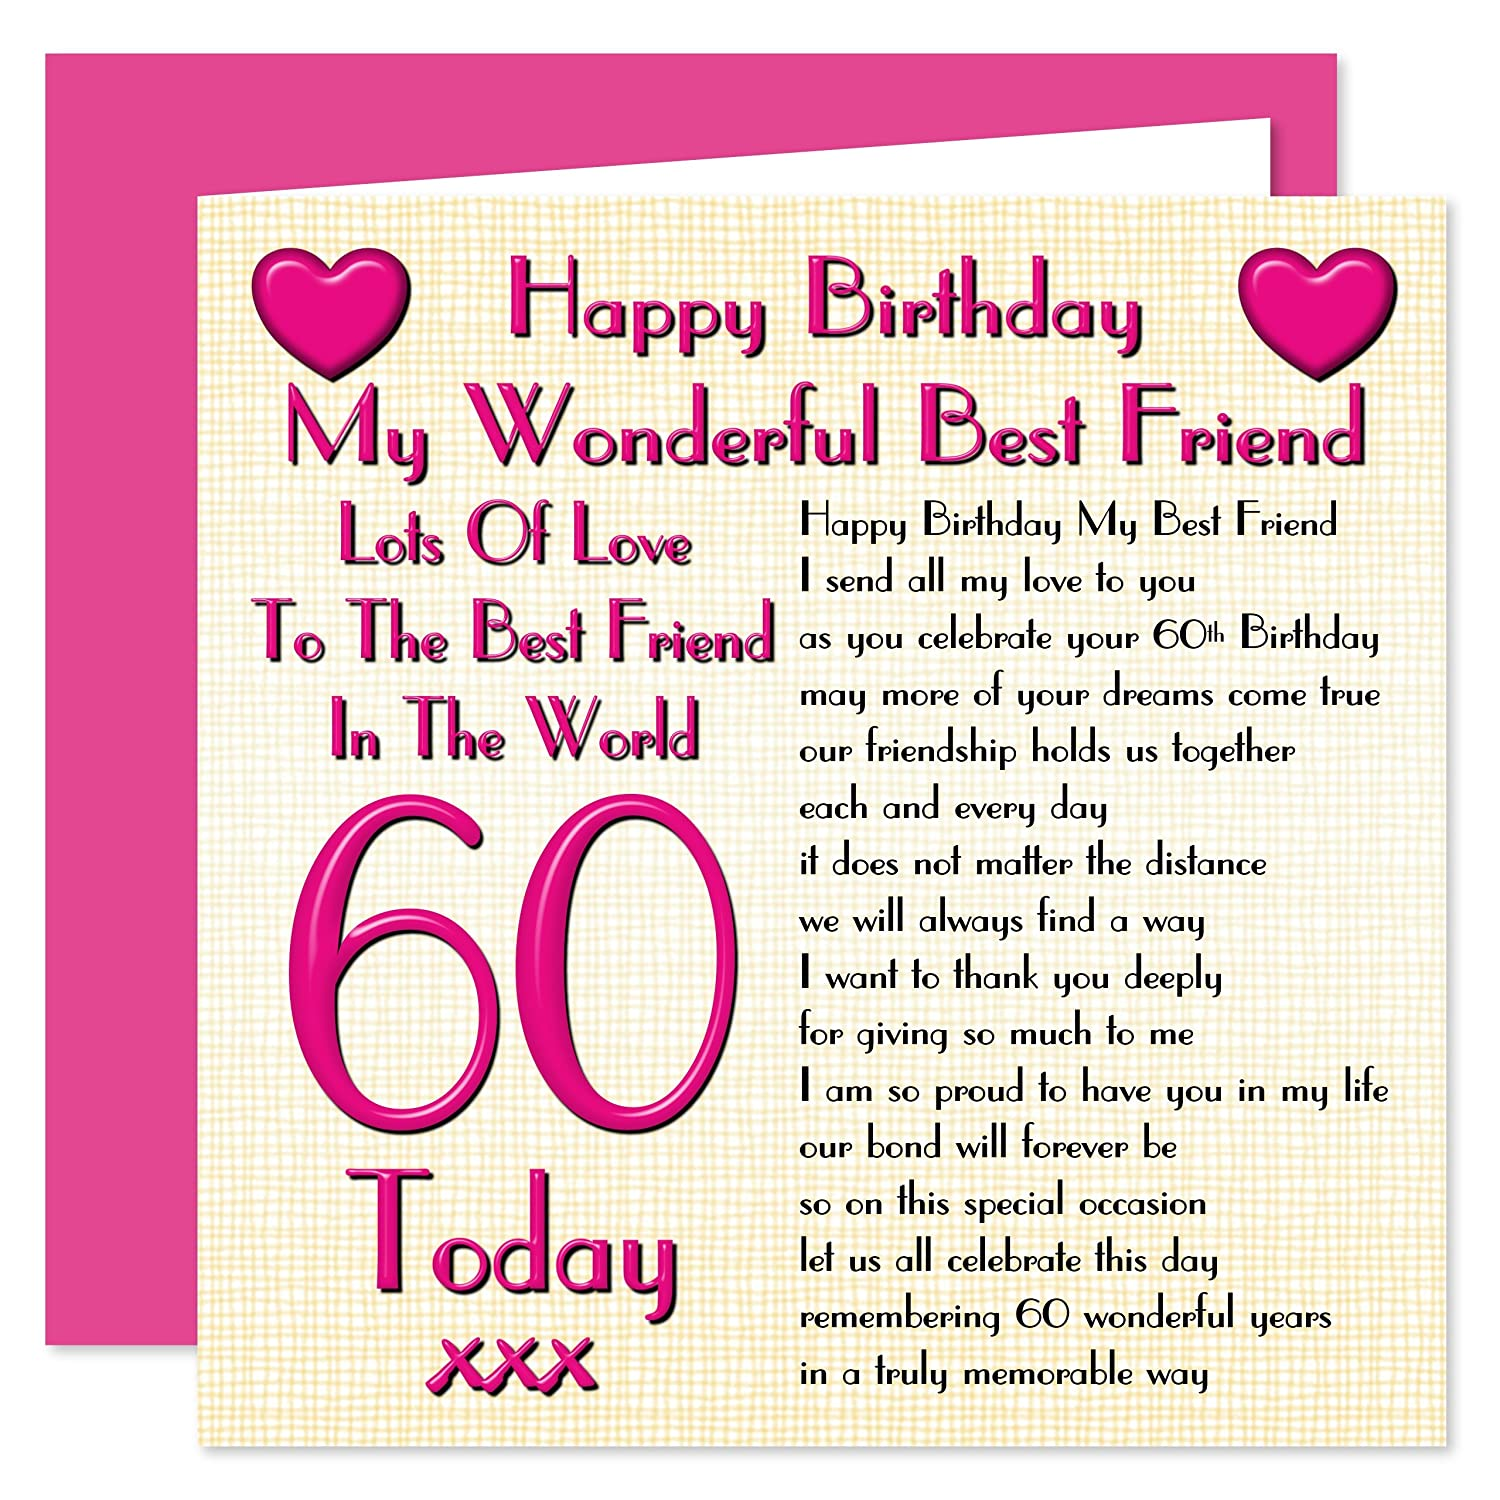 Best Friend 60th Happy Birthday Card Lots Of Love To The Best – A Birthday Card for a Best Friend